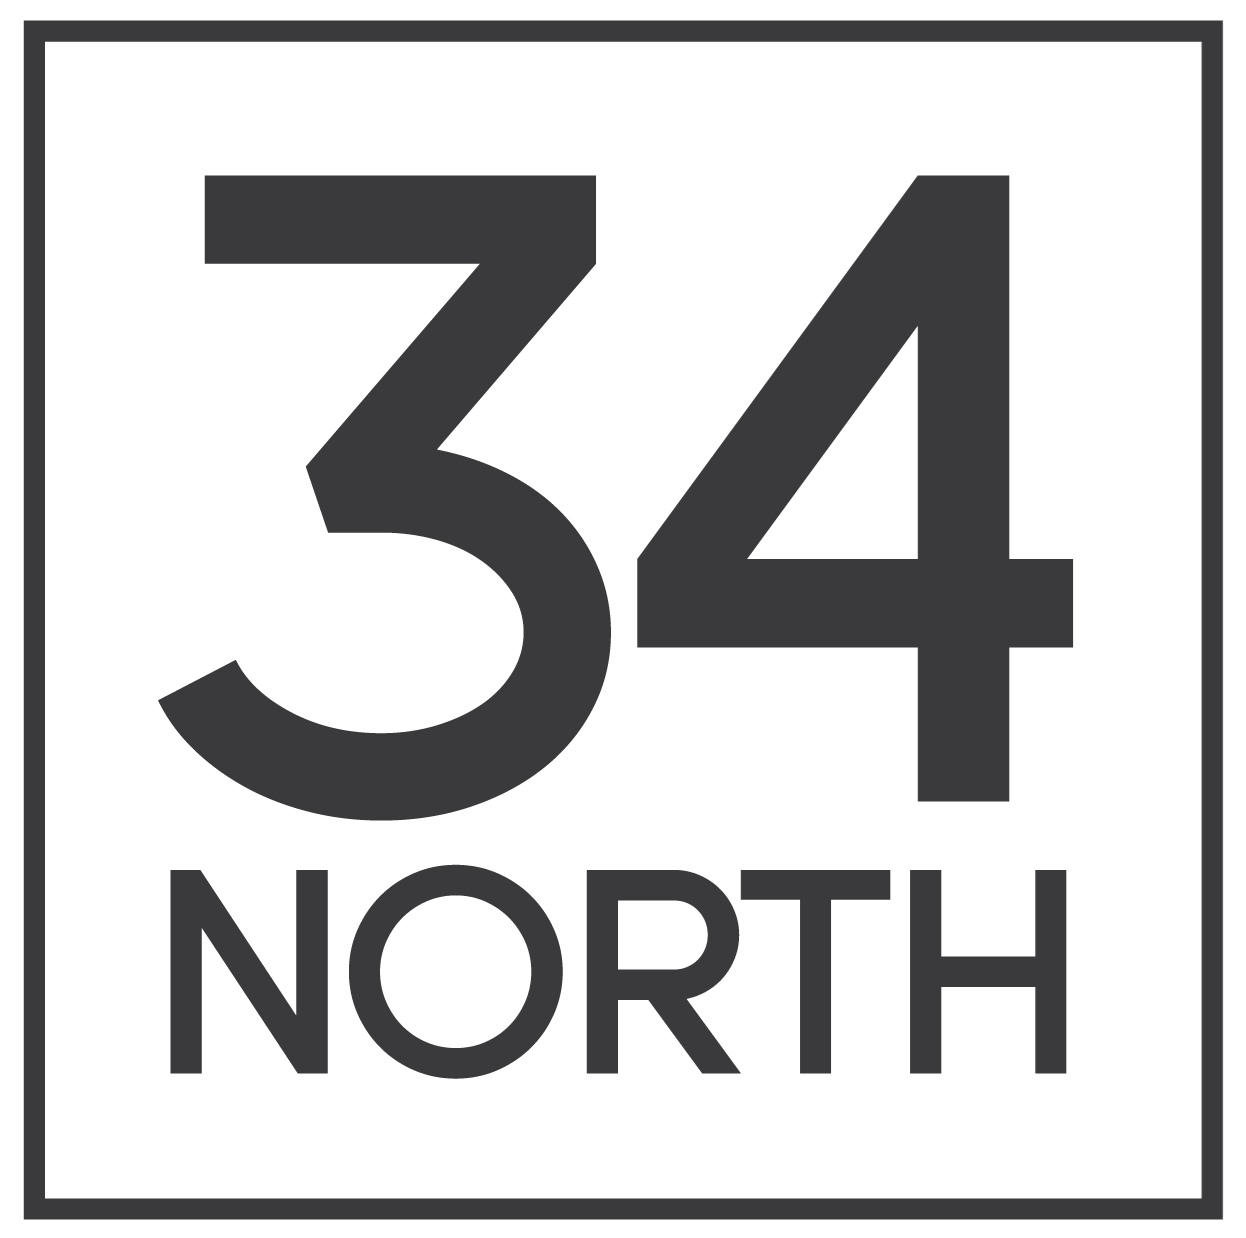 34 North Property Logo 0